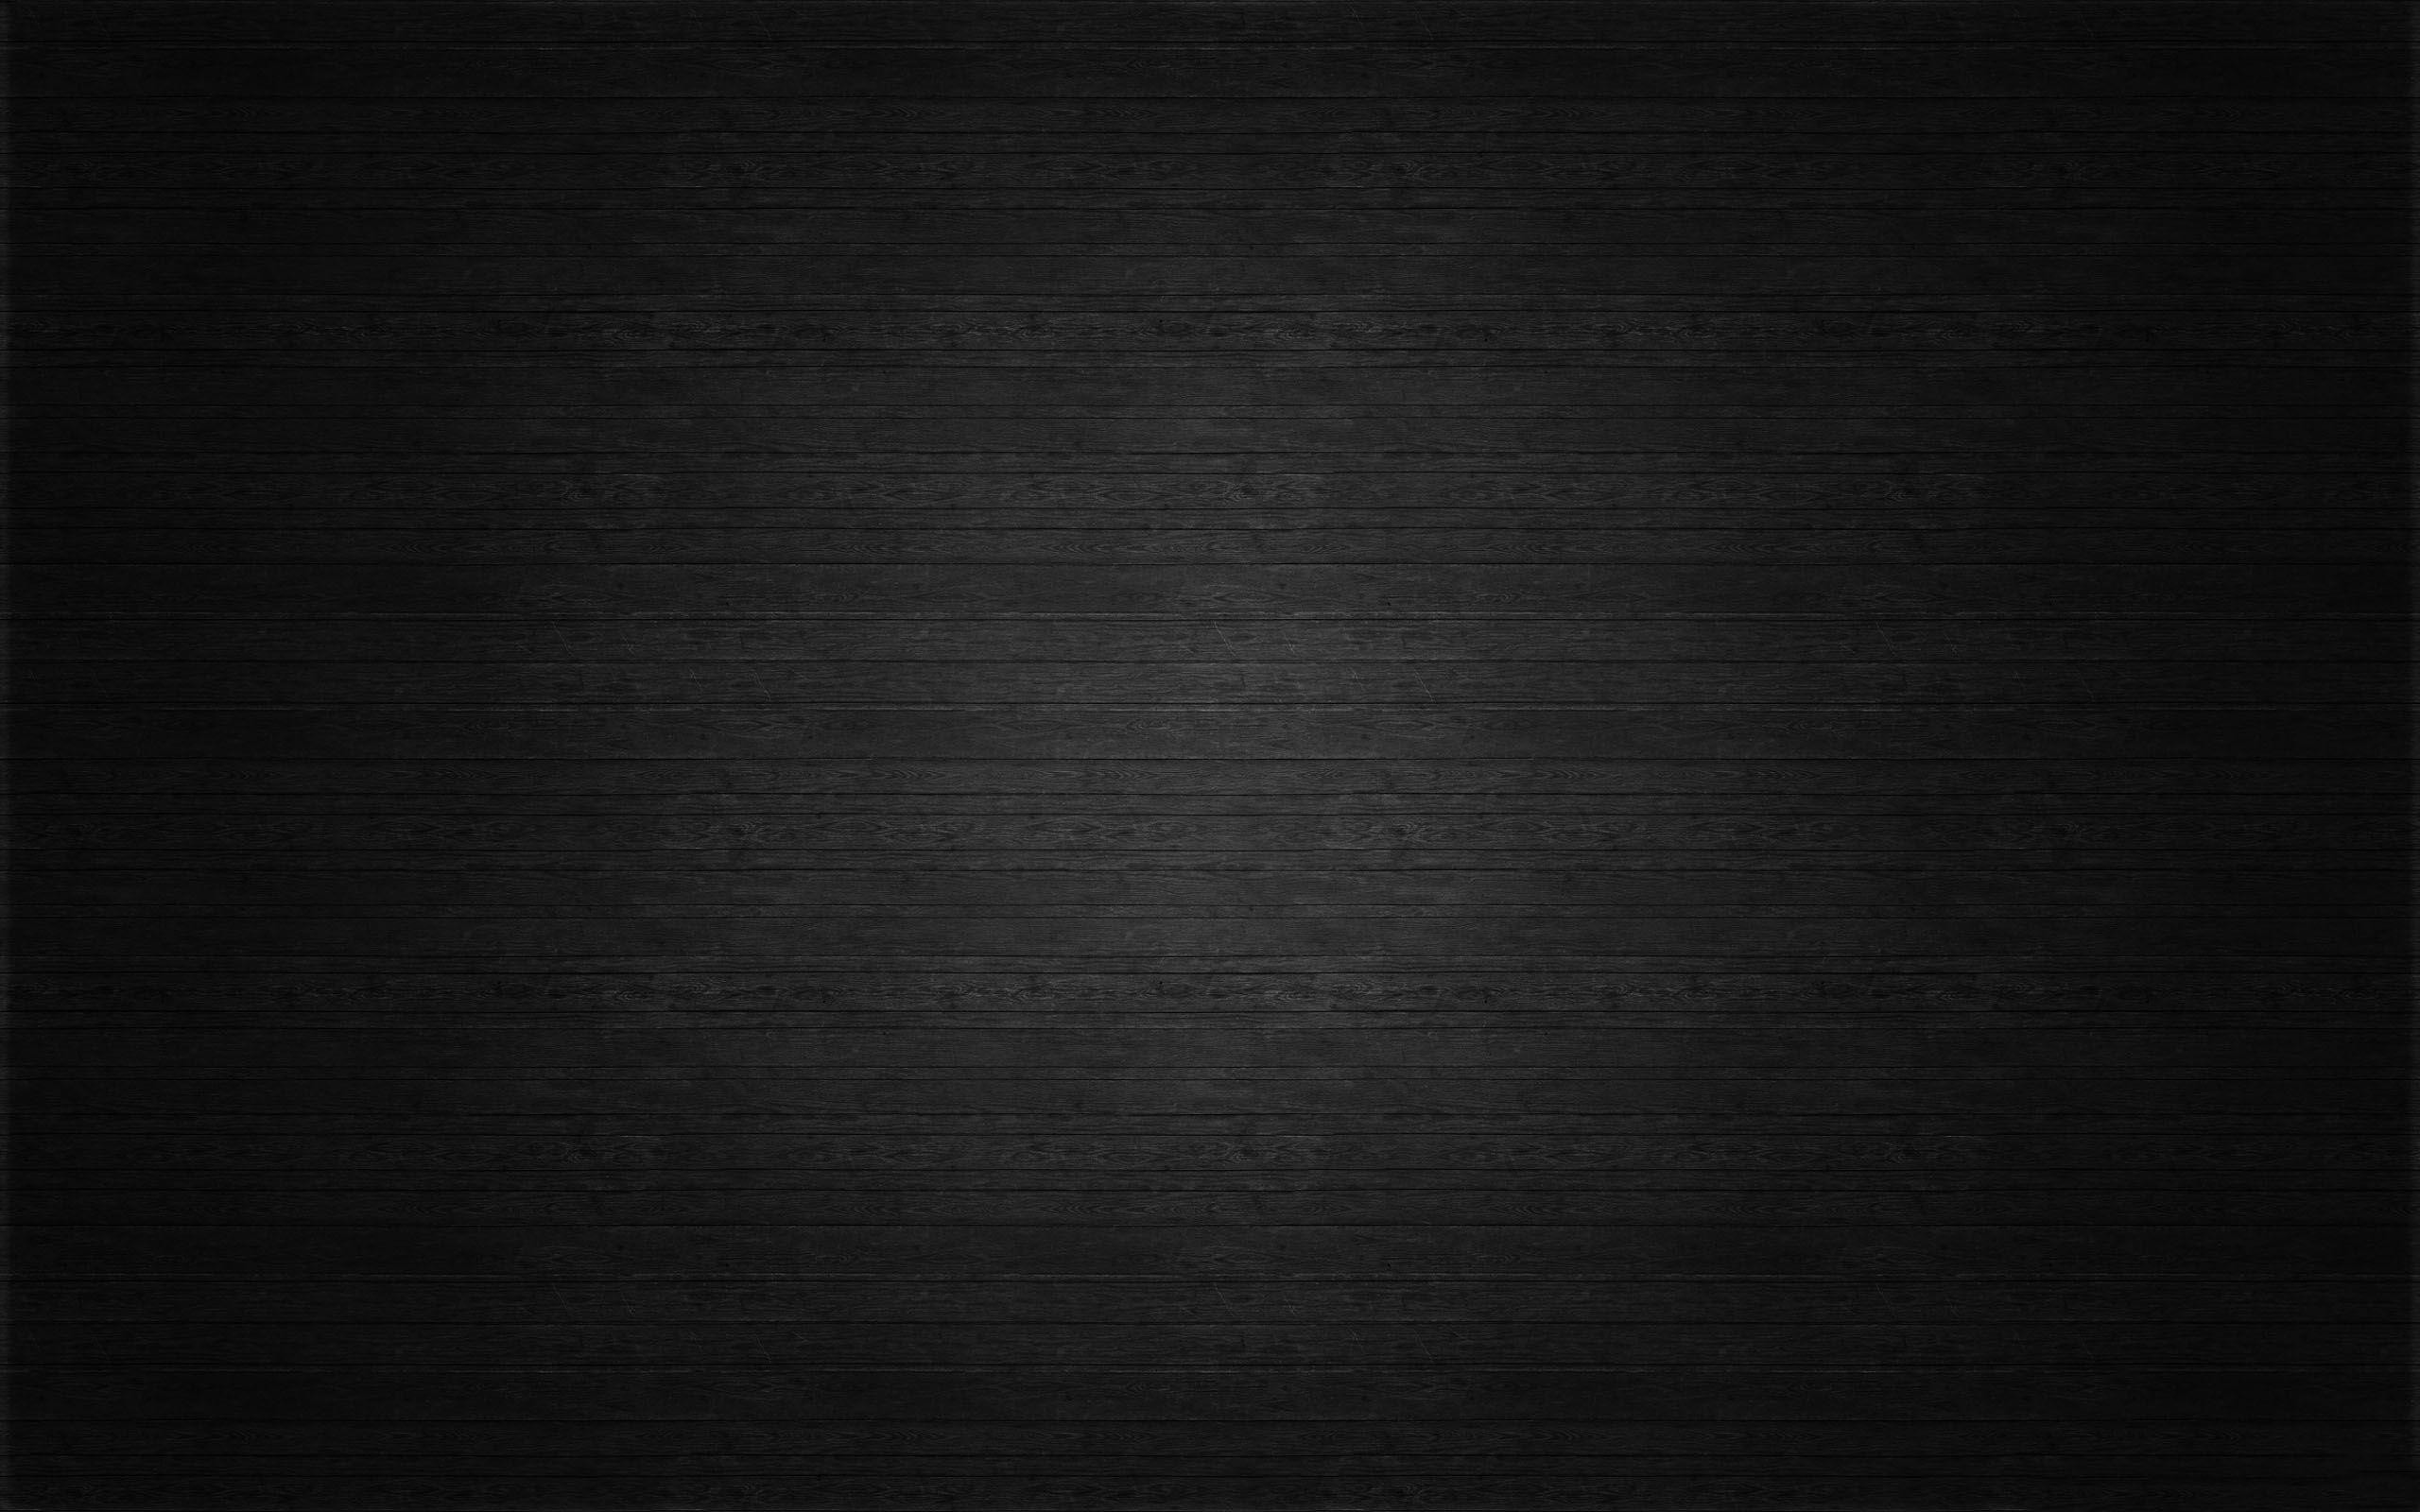 2560x1600 Black Wood Wallpapers - Full HD wallpaper search - page 2